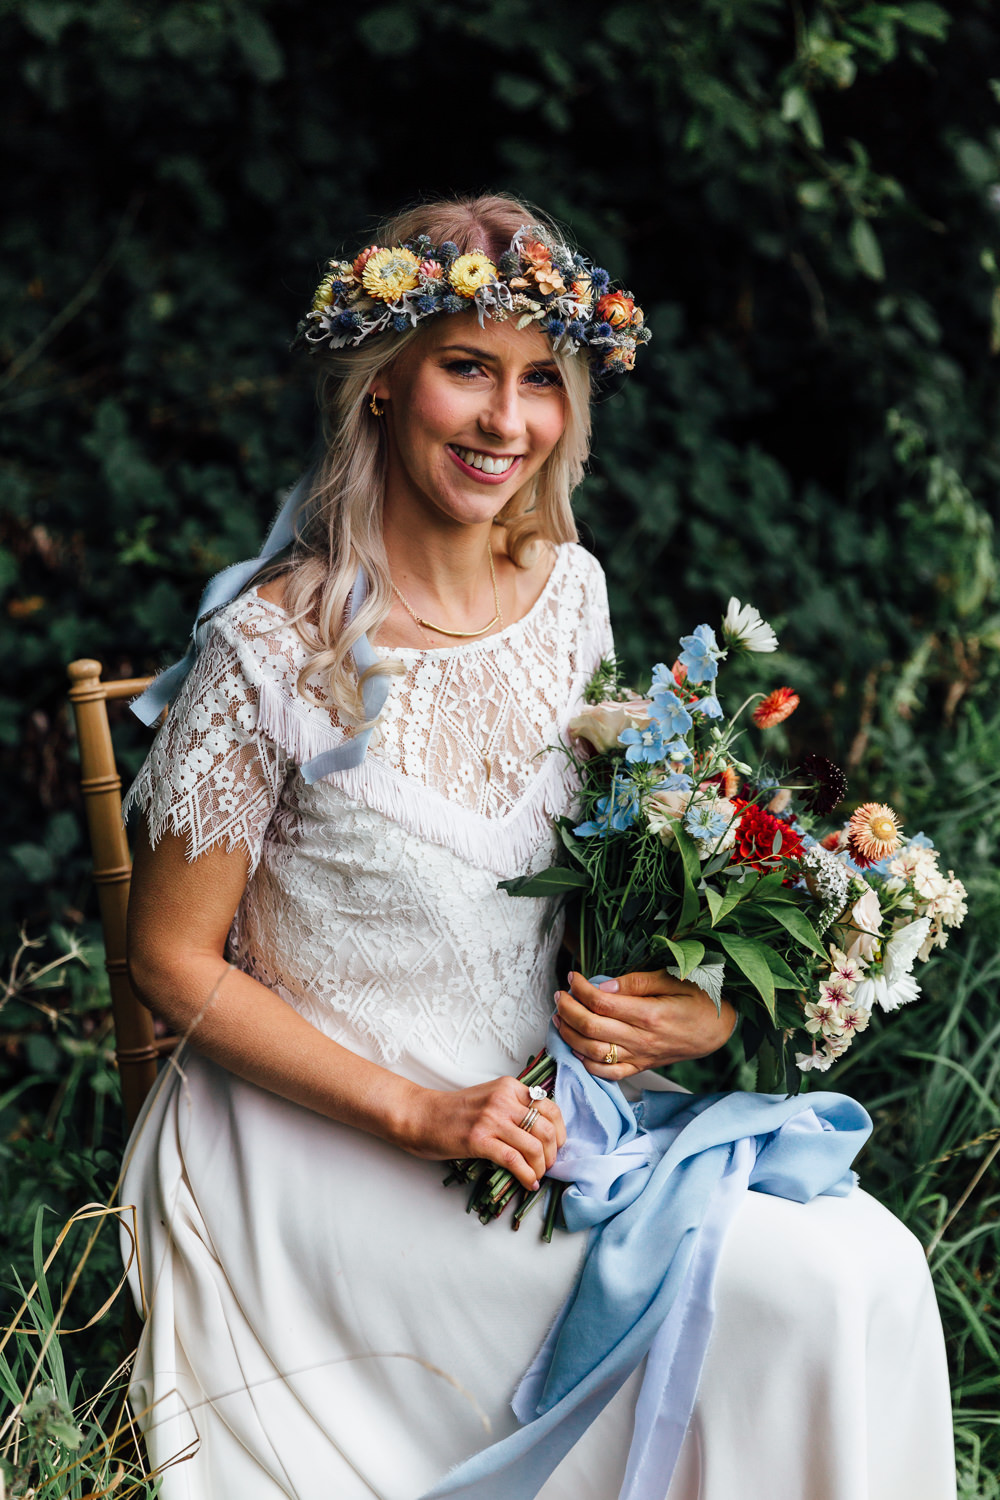 Dress Gown Bride Bridal Lucy Can't Dance Lace Top Sleeves Autumn Festival Wedding Ideas Indigo and Violet Photography